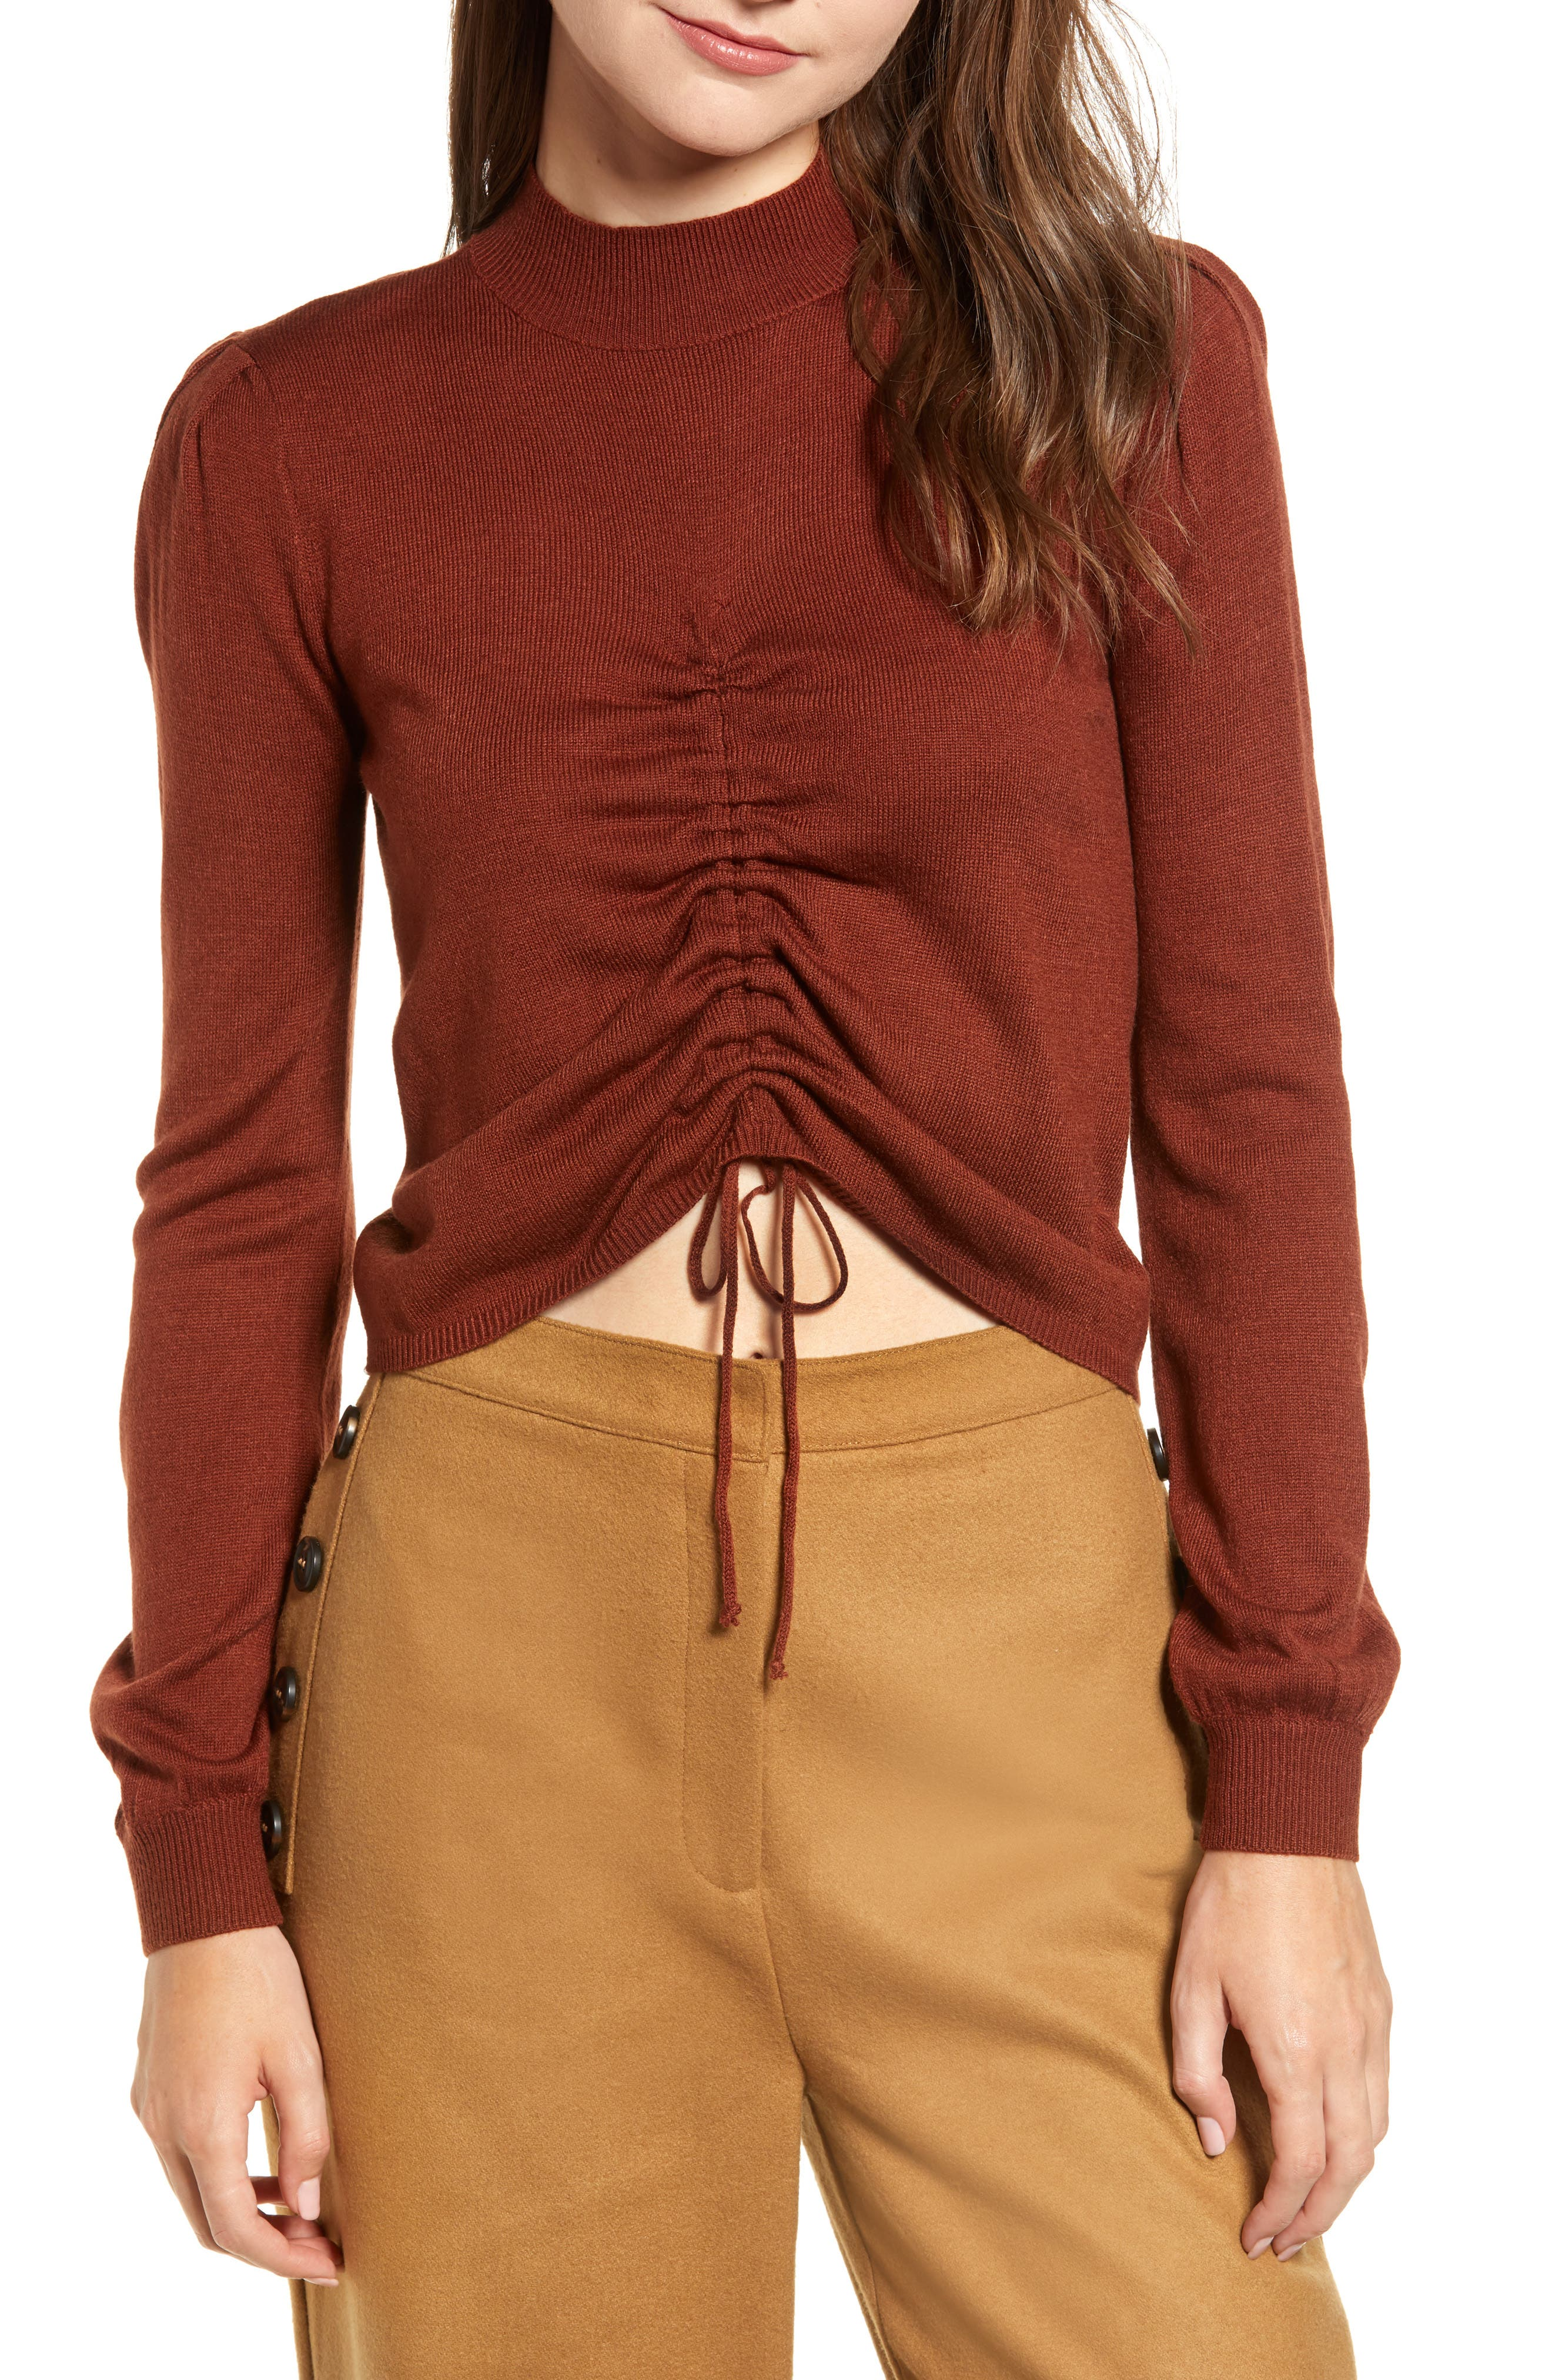 Chriselle Lim Madison Ruched Sweater,                             Main thumbnail 1, color,                             RUST